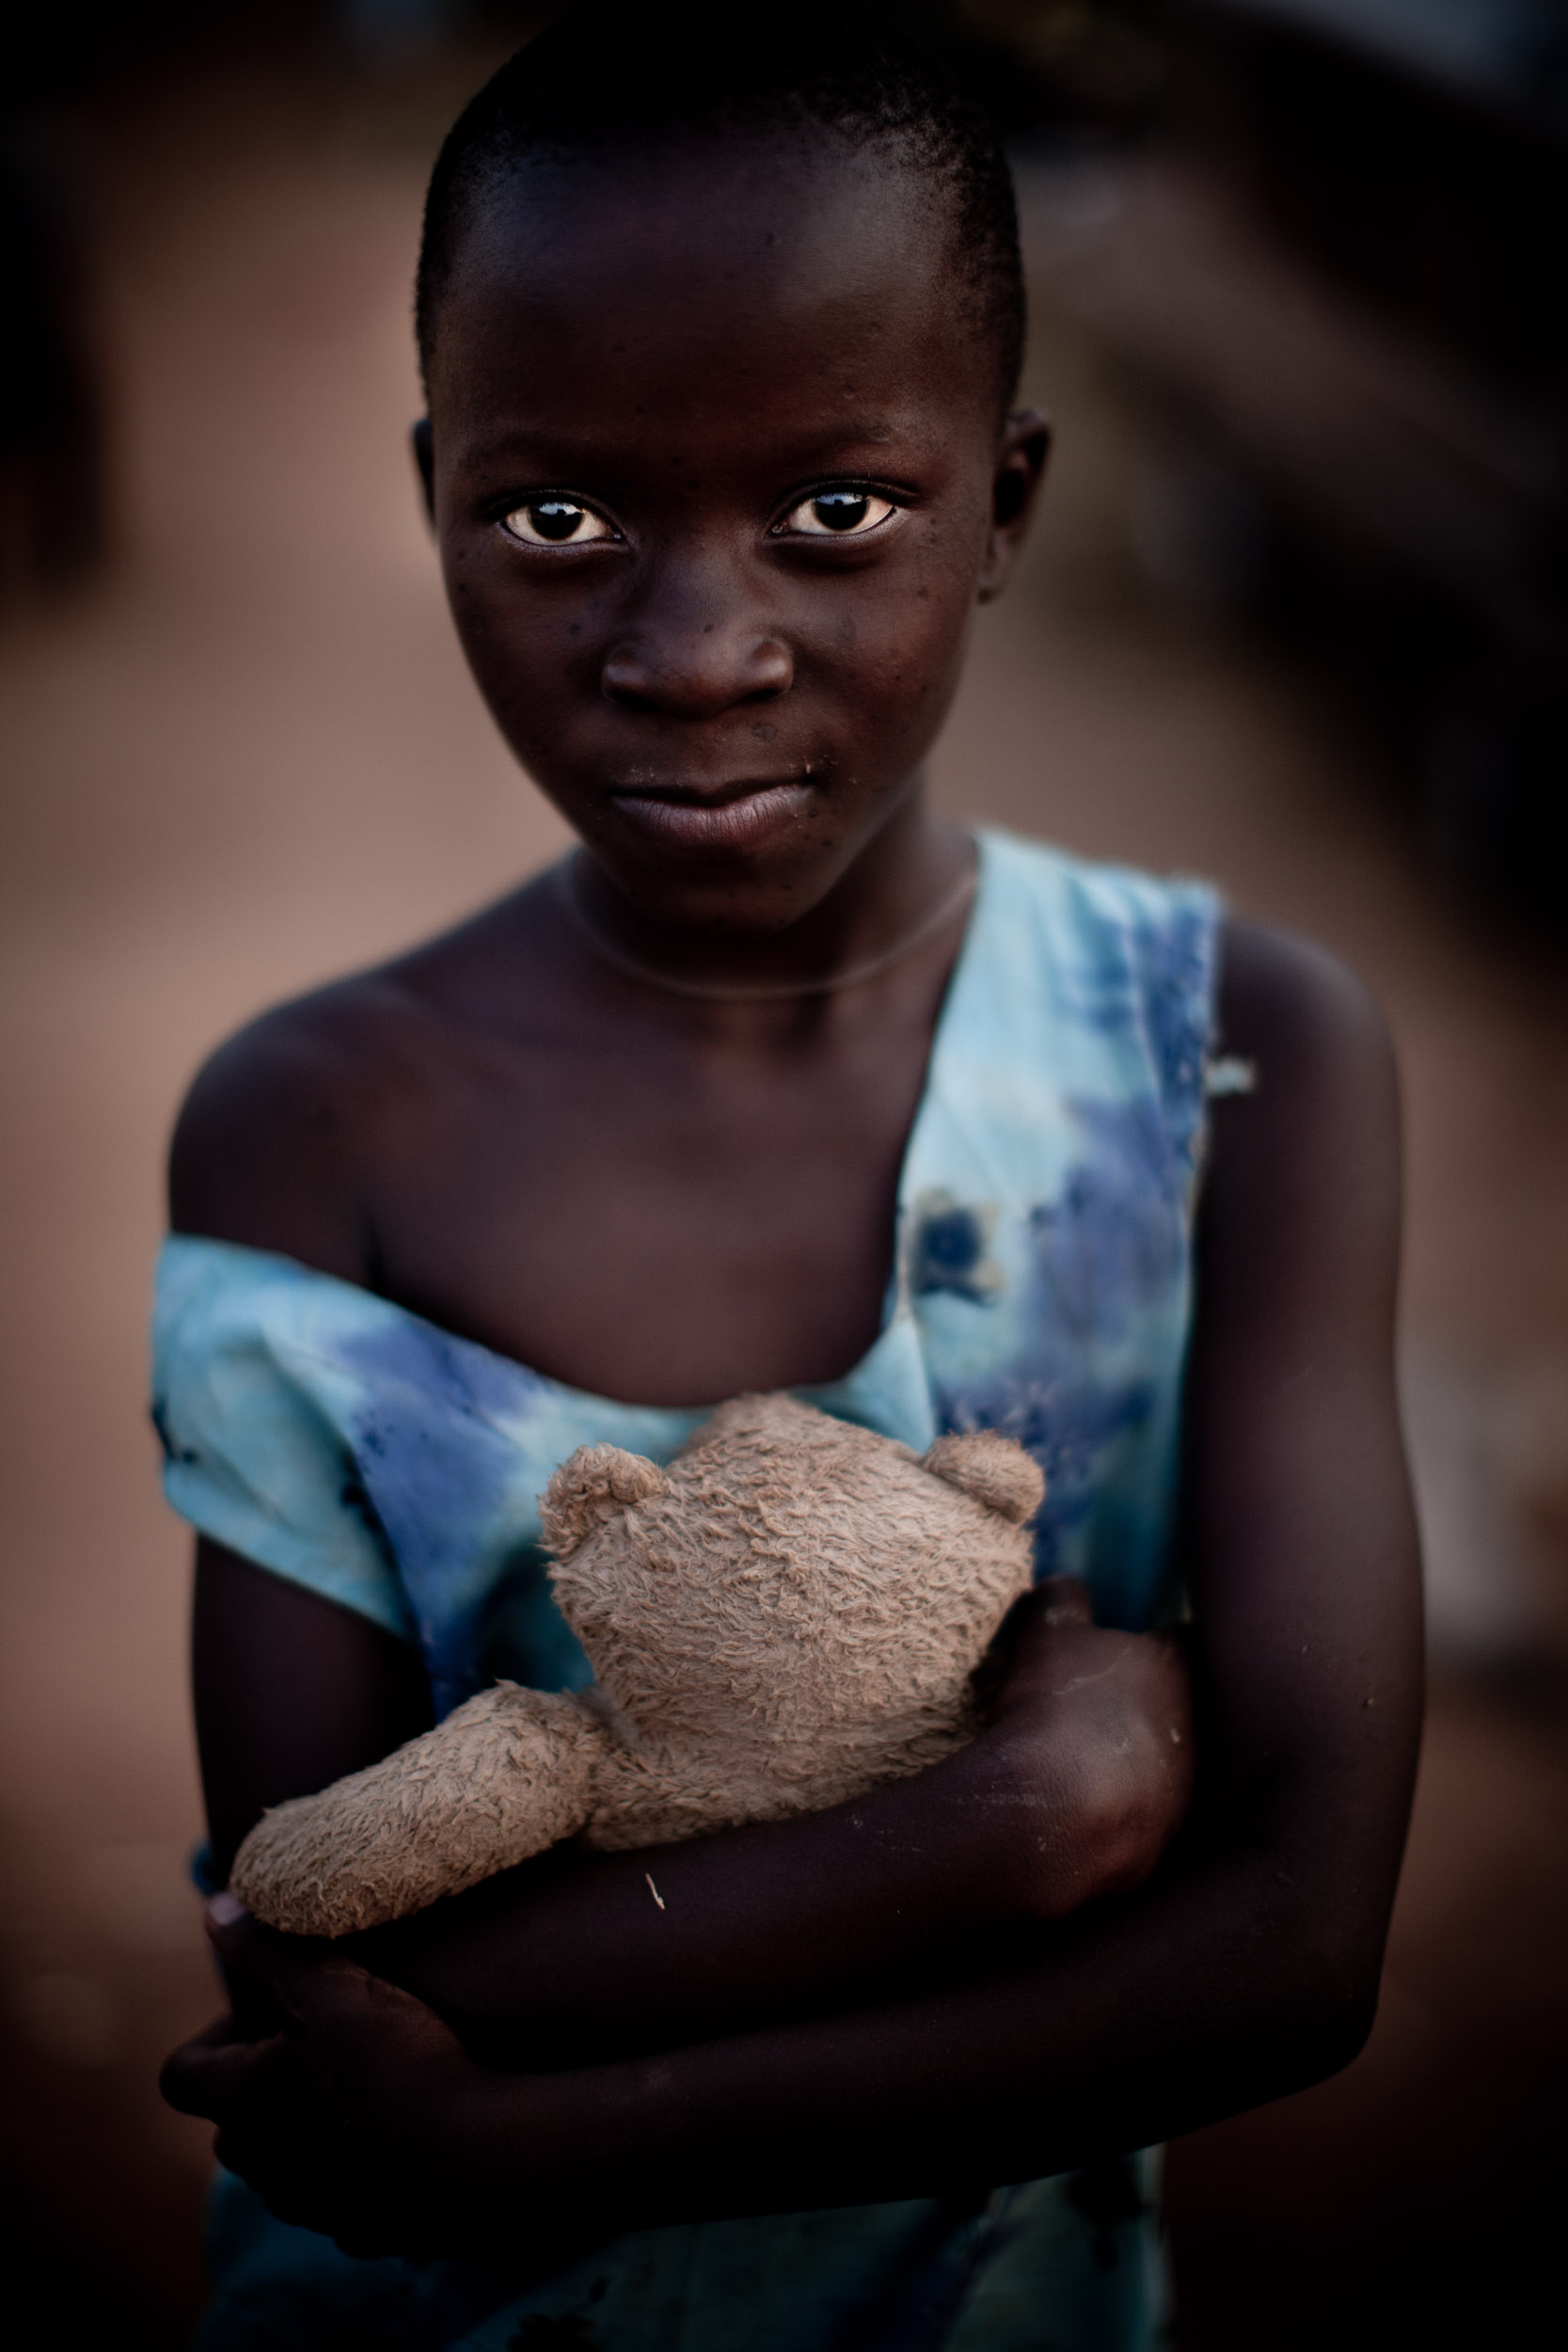 0001_uganda girl with teddy bear 3_20110217_0101